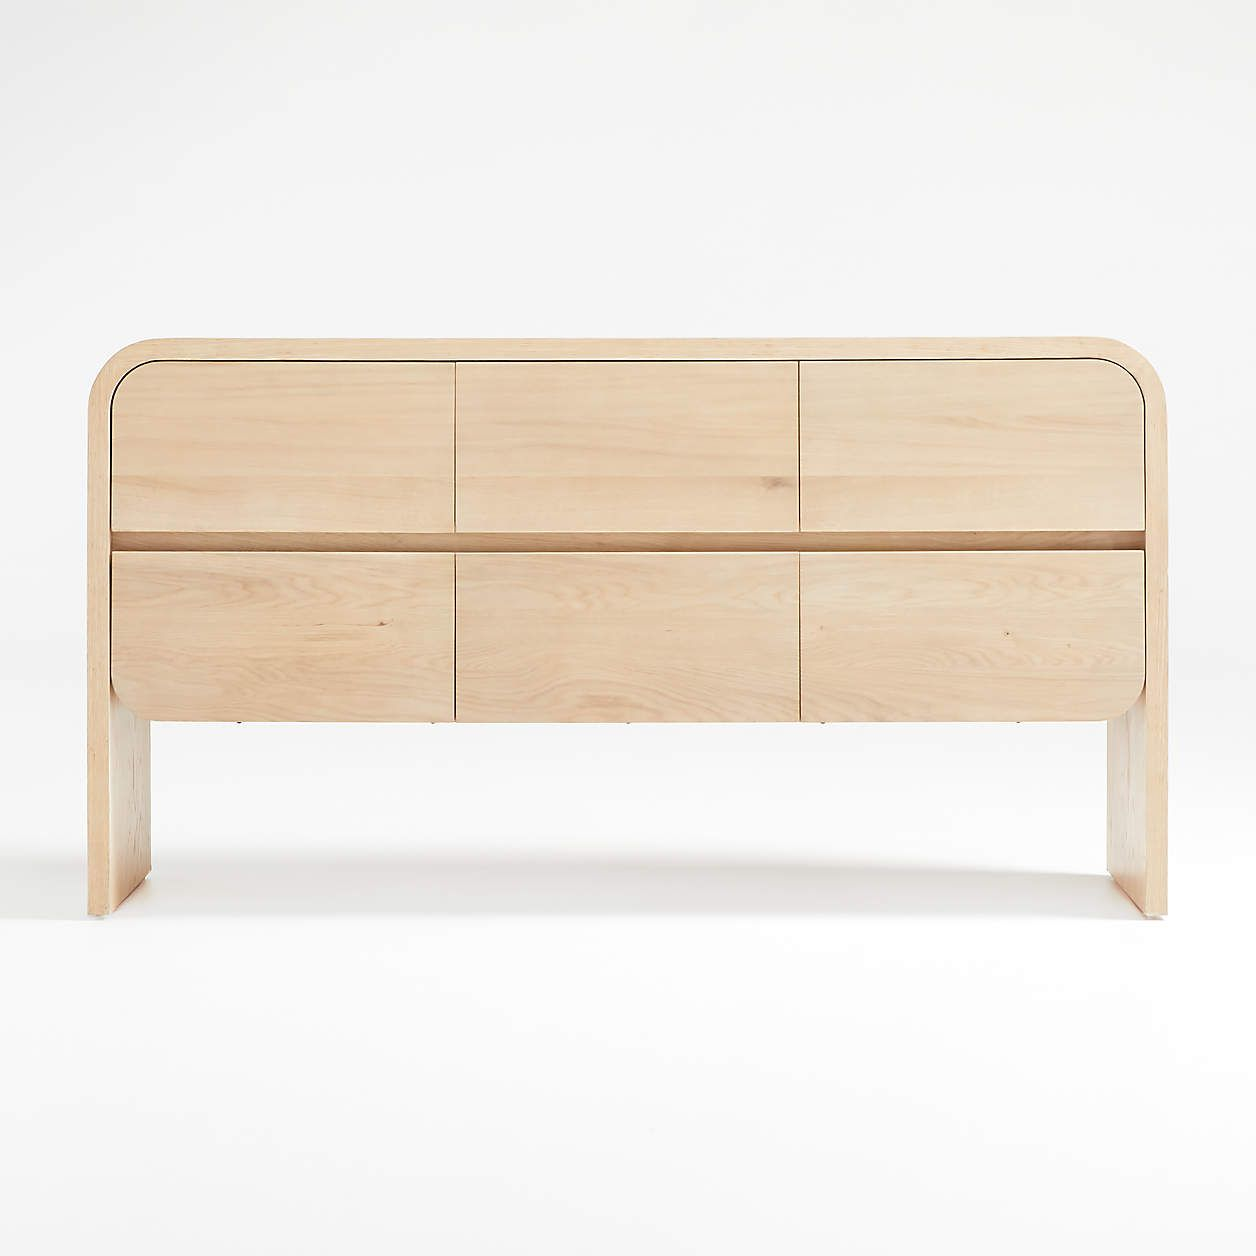 A wooden dresser you can buy at Crate & Barrel